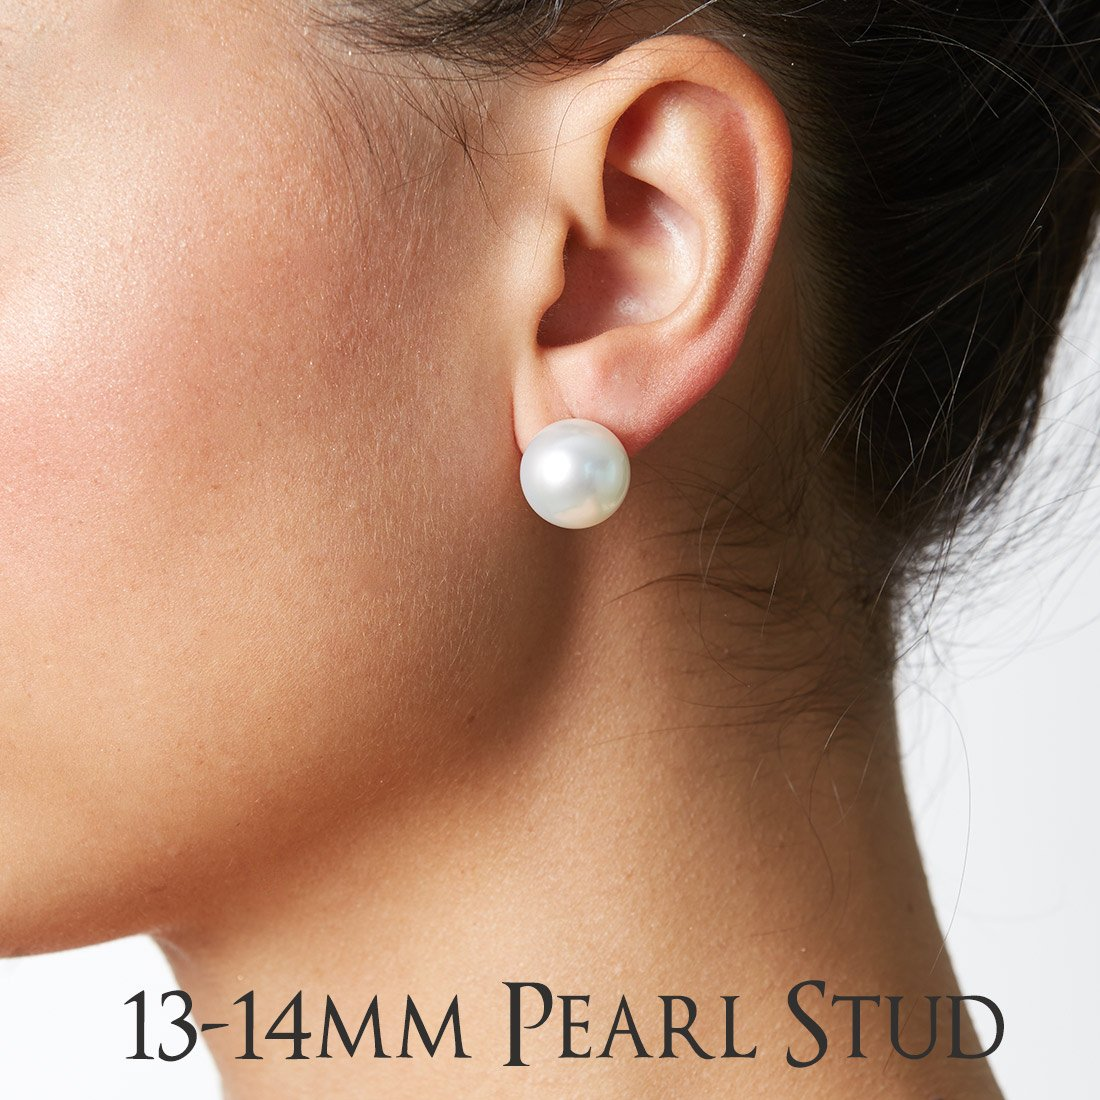 18K White South Sea Cultured Pearl and Diamond Bezel Dangle Earrings, 13.0-14.0mm - AAA Quality, 18K White Gold by Pure Pearls (Image #2)